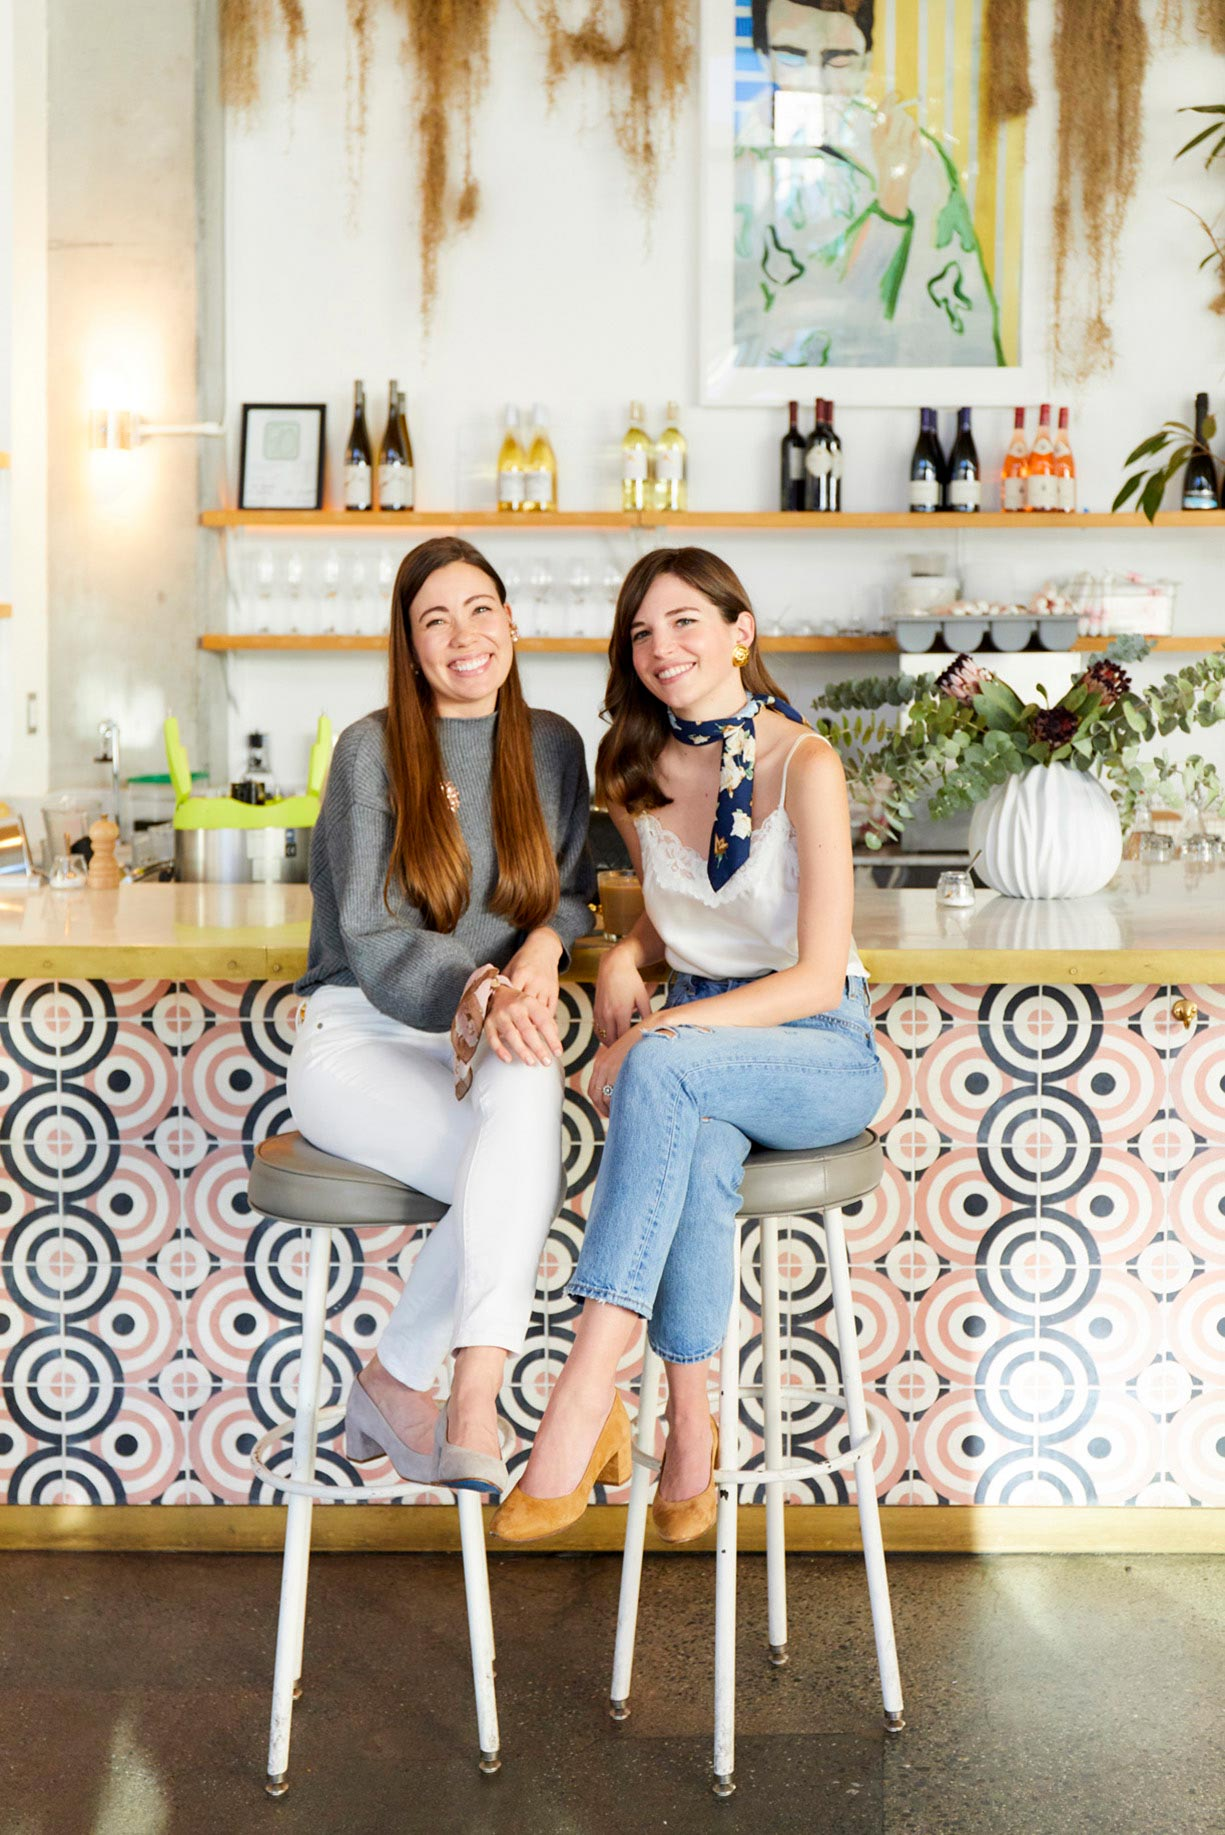 Meet Jillian & Emilee the Sweet & Spark Co-Founders